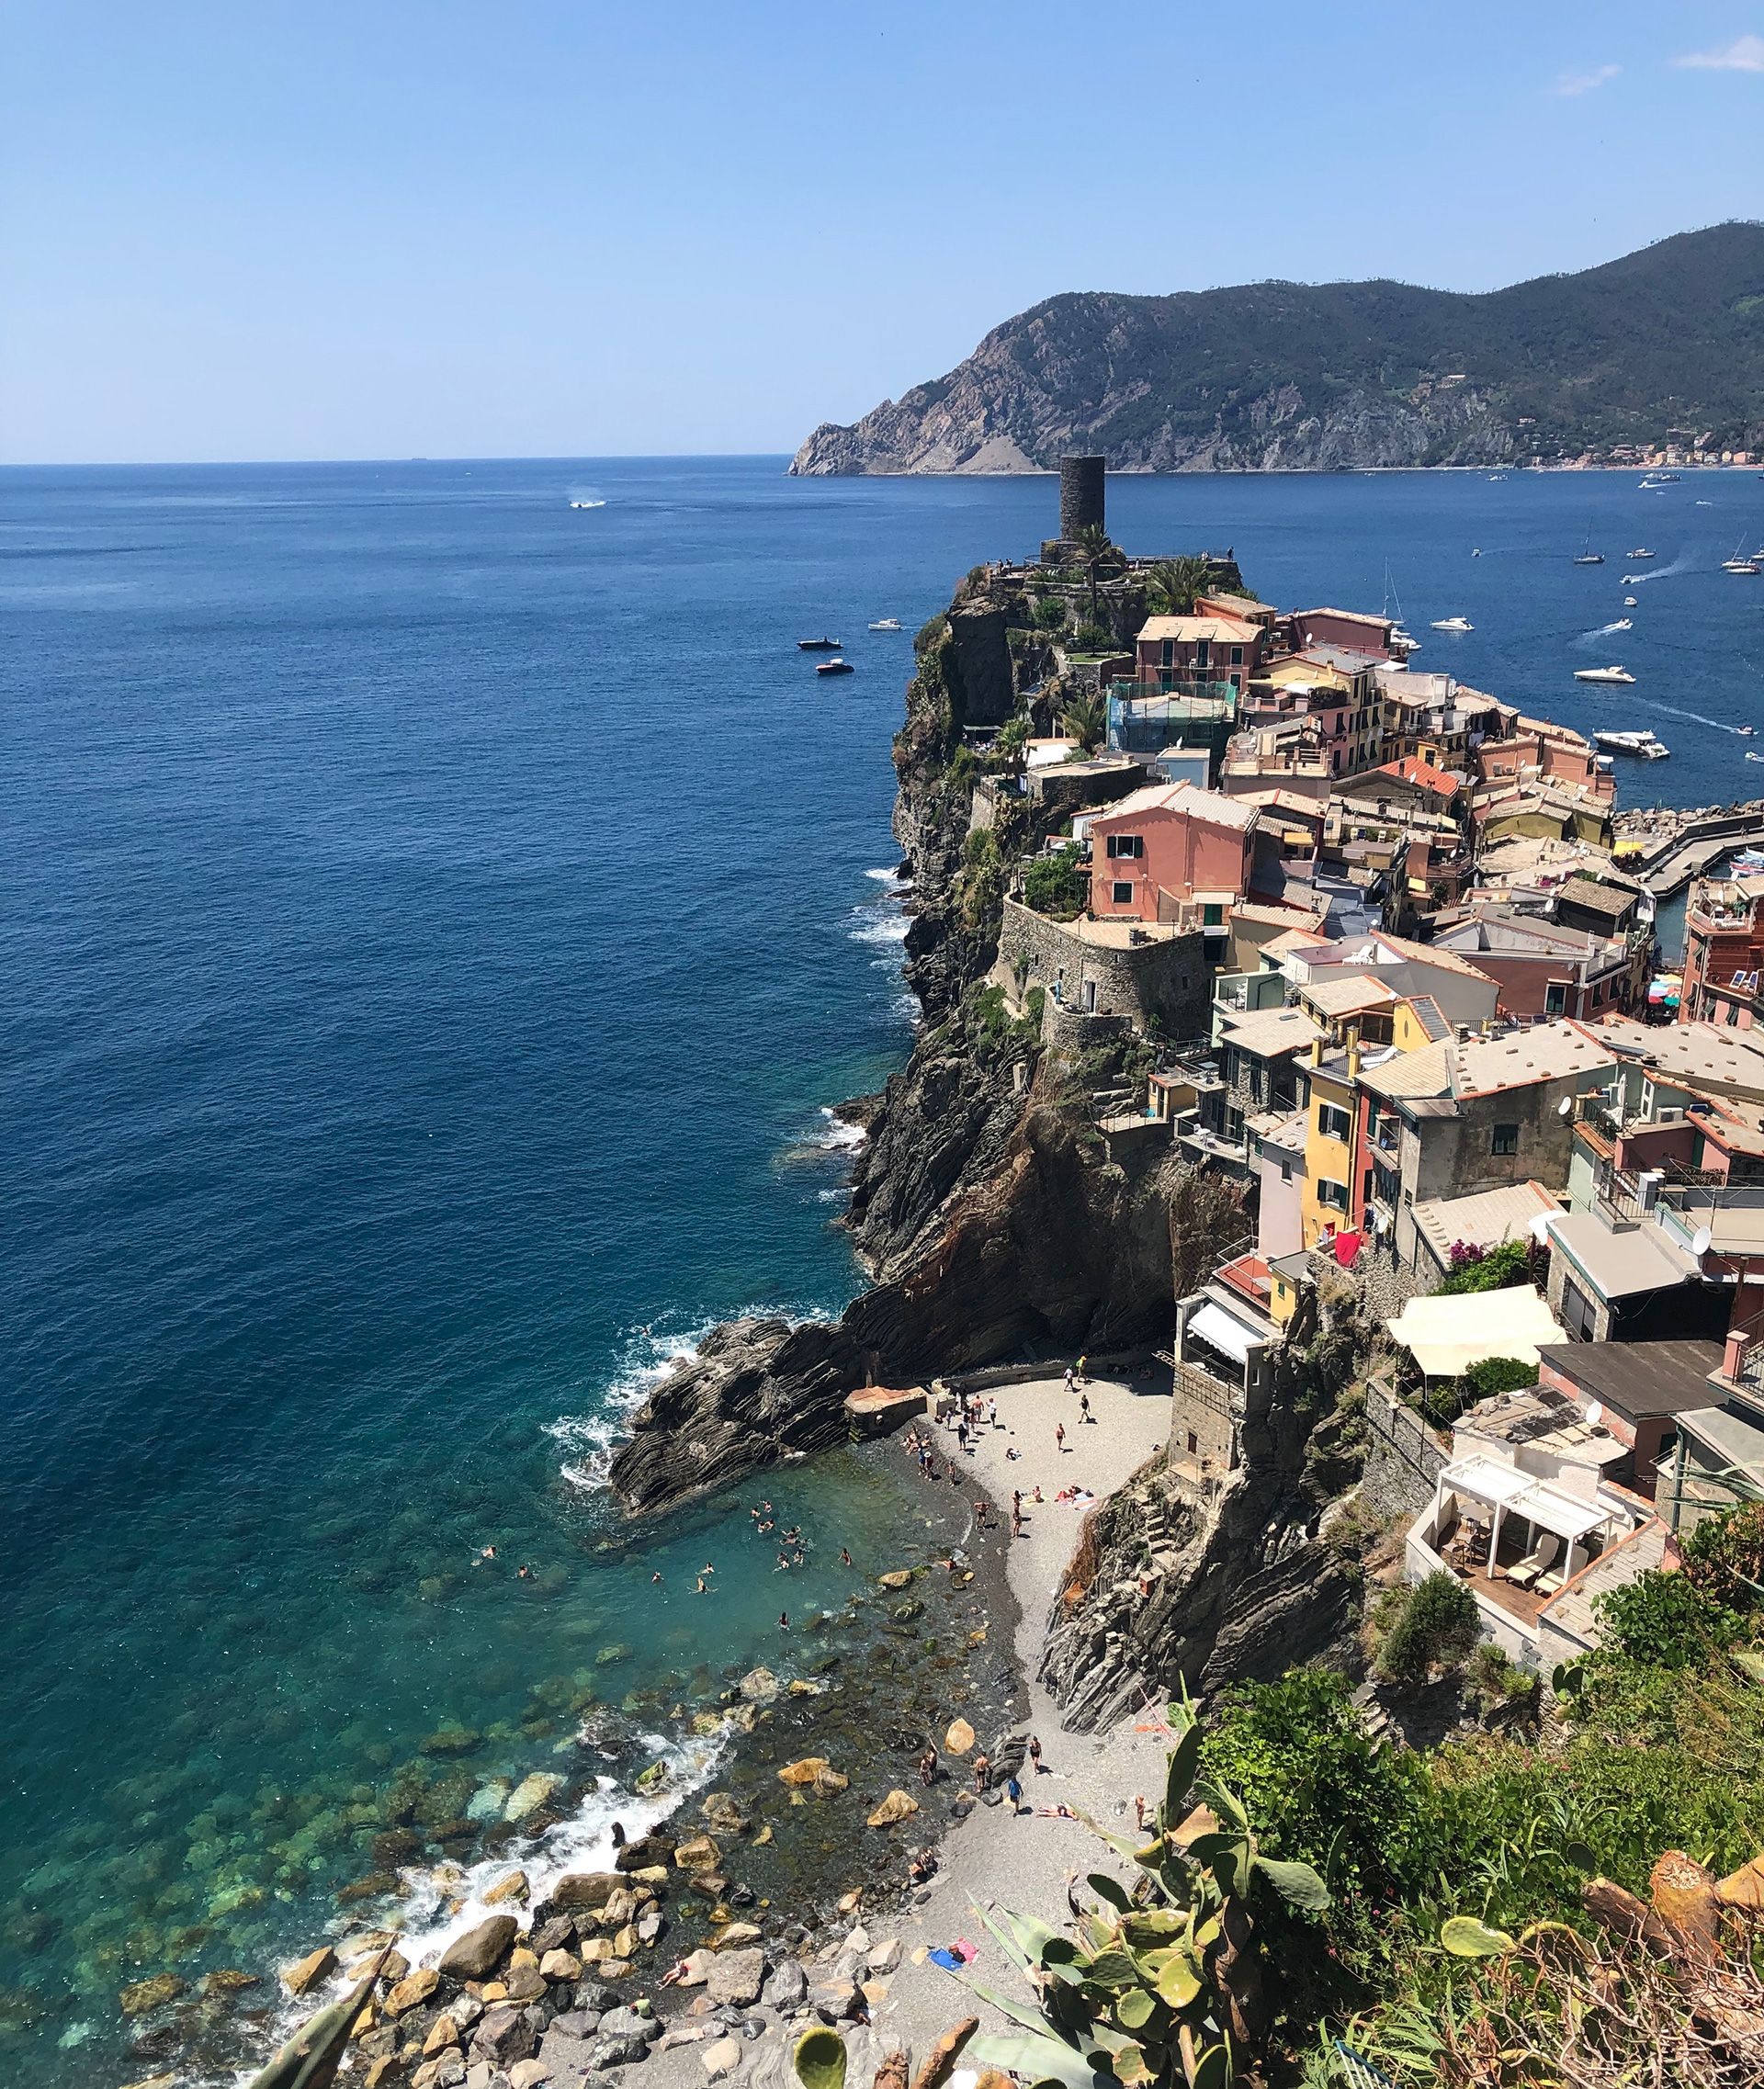 Cinque Terre's varicolored homes hoisted on jagged hills against the sea | Cinque Terre| Italy| STIR